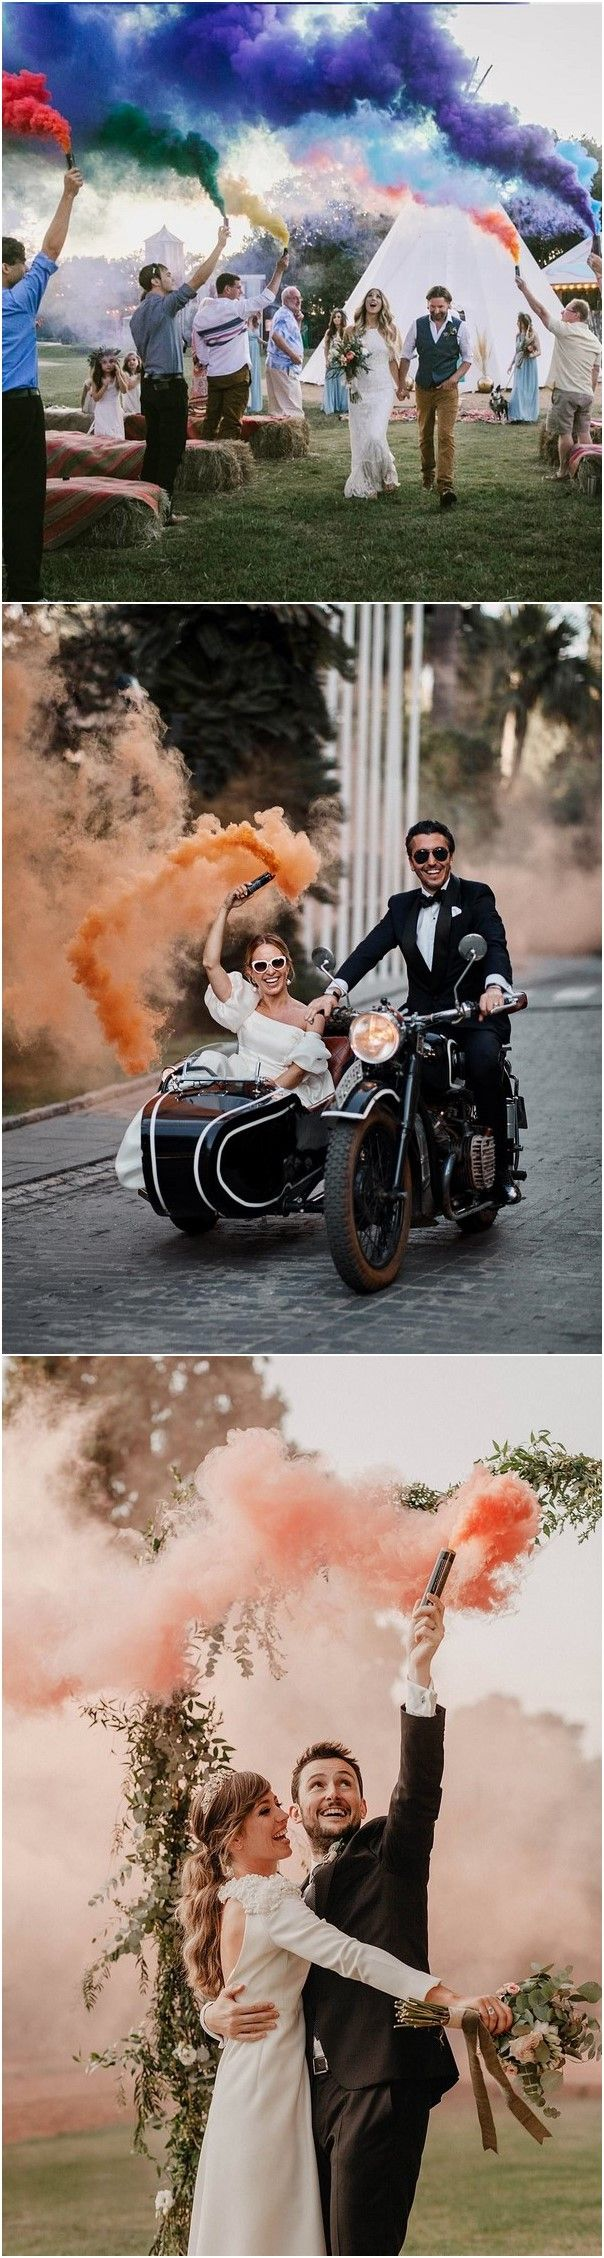 15 Cool & Colorful Smoke Bomb Wedding Photo Inspirations